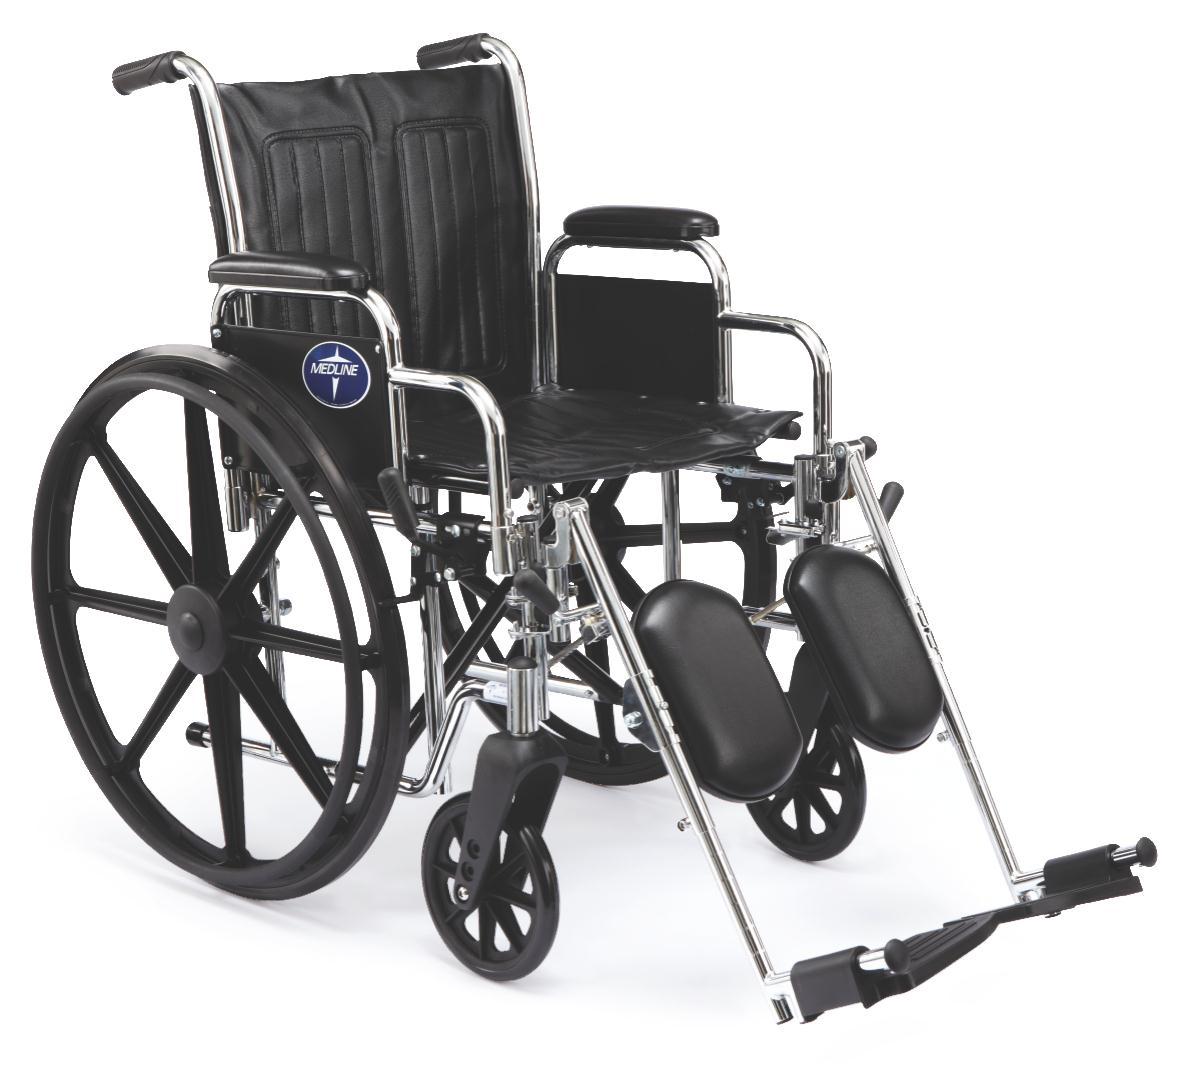 Medline 2000 Manual Wheelchair Parts